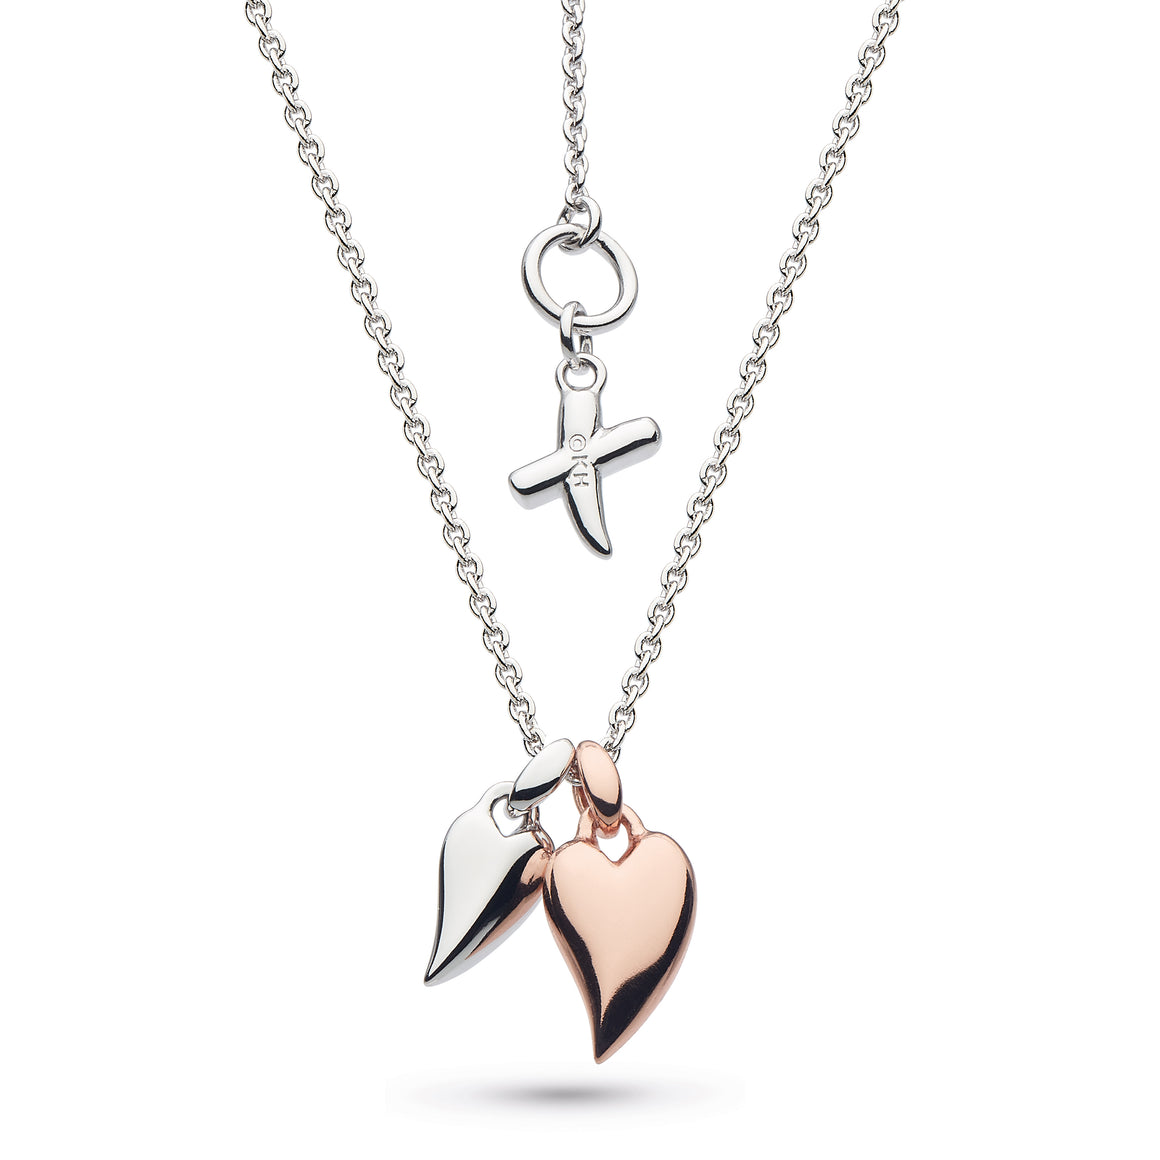 Kit Heath Desire Kiss Twinned Mini Hearts Sterling Silver & Rose Gold Plate Necklace - 90bkrg028